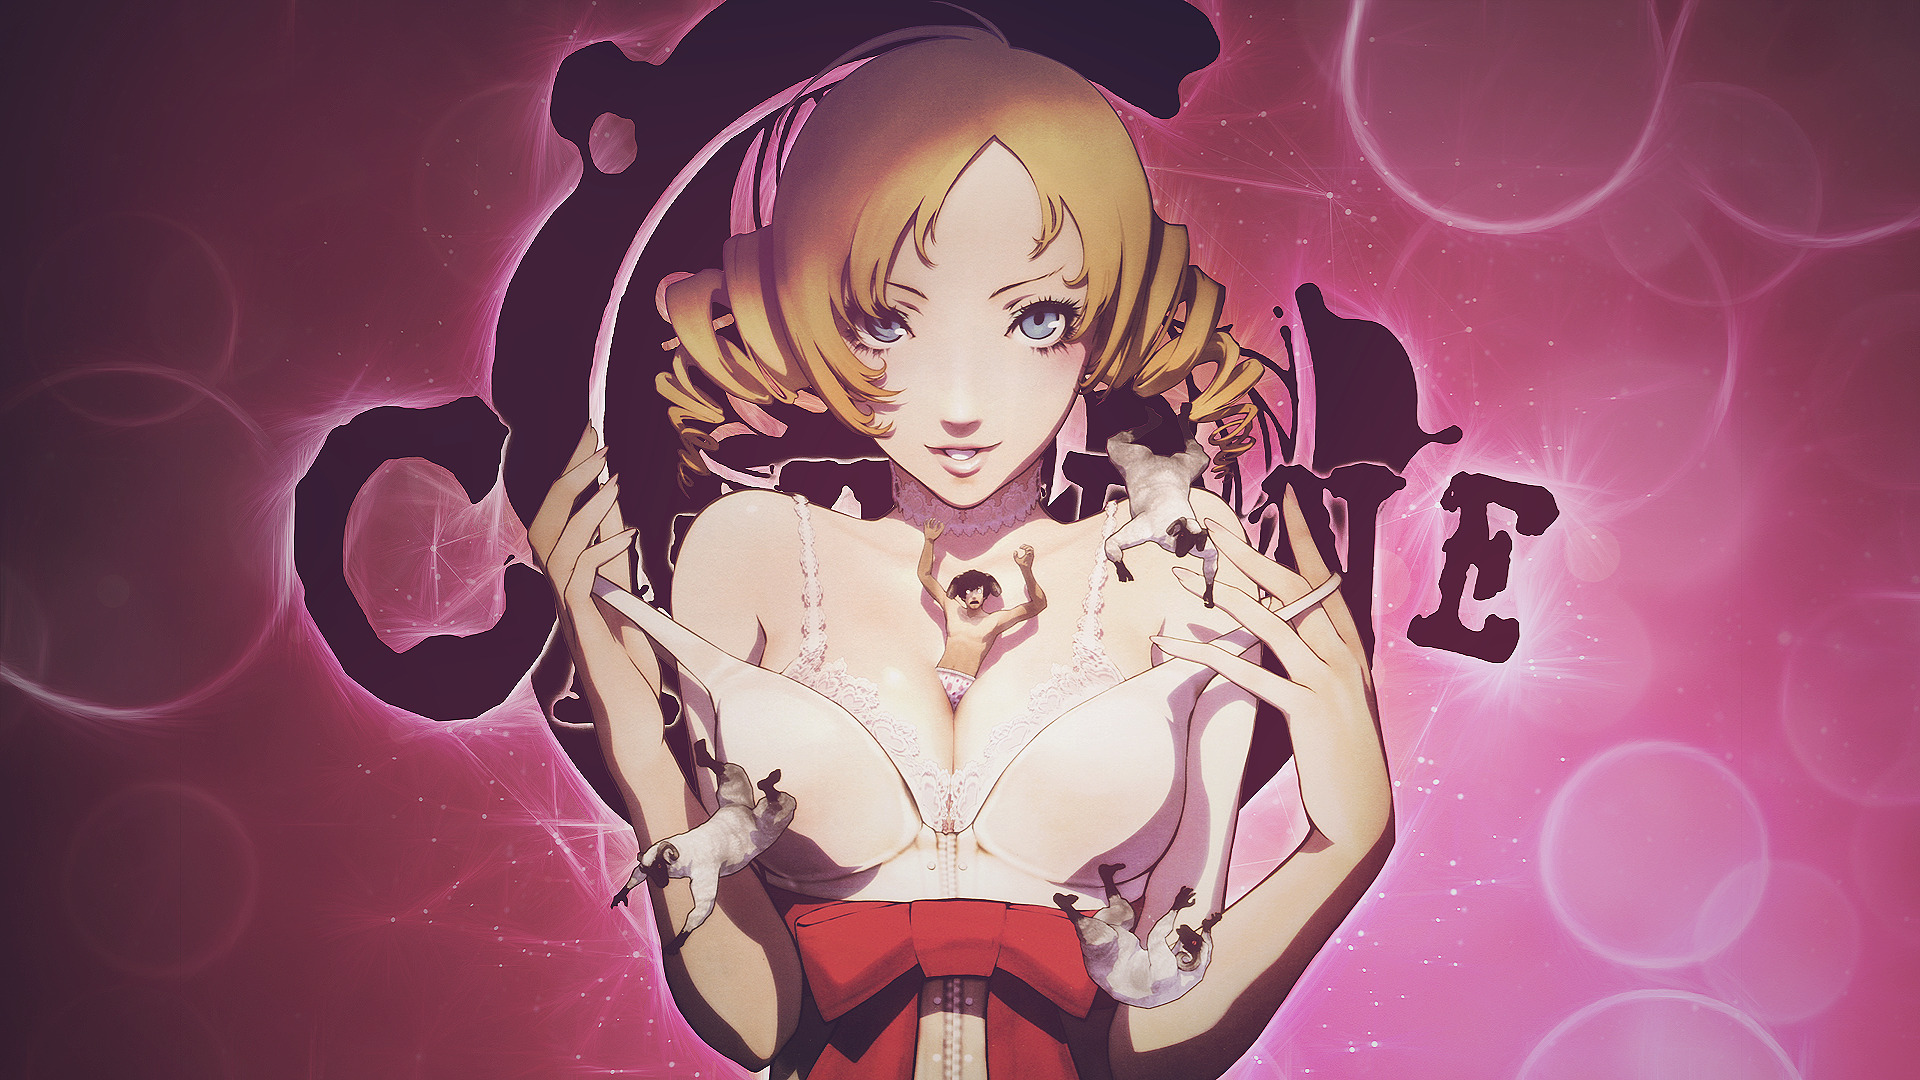 Catherine-NintendOn